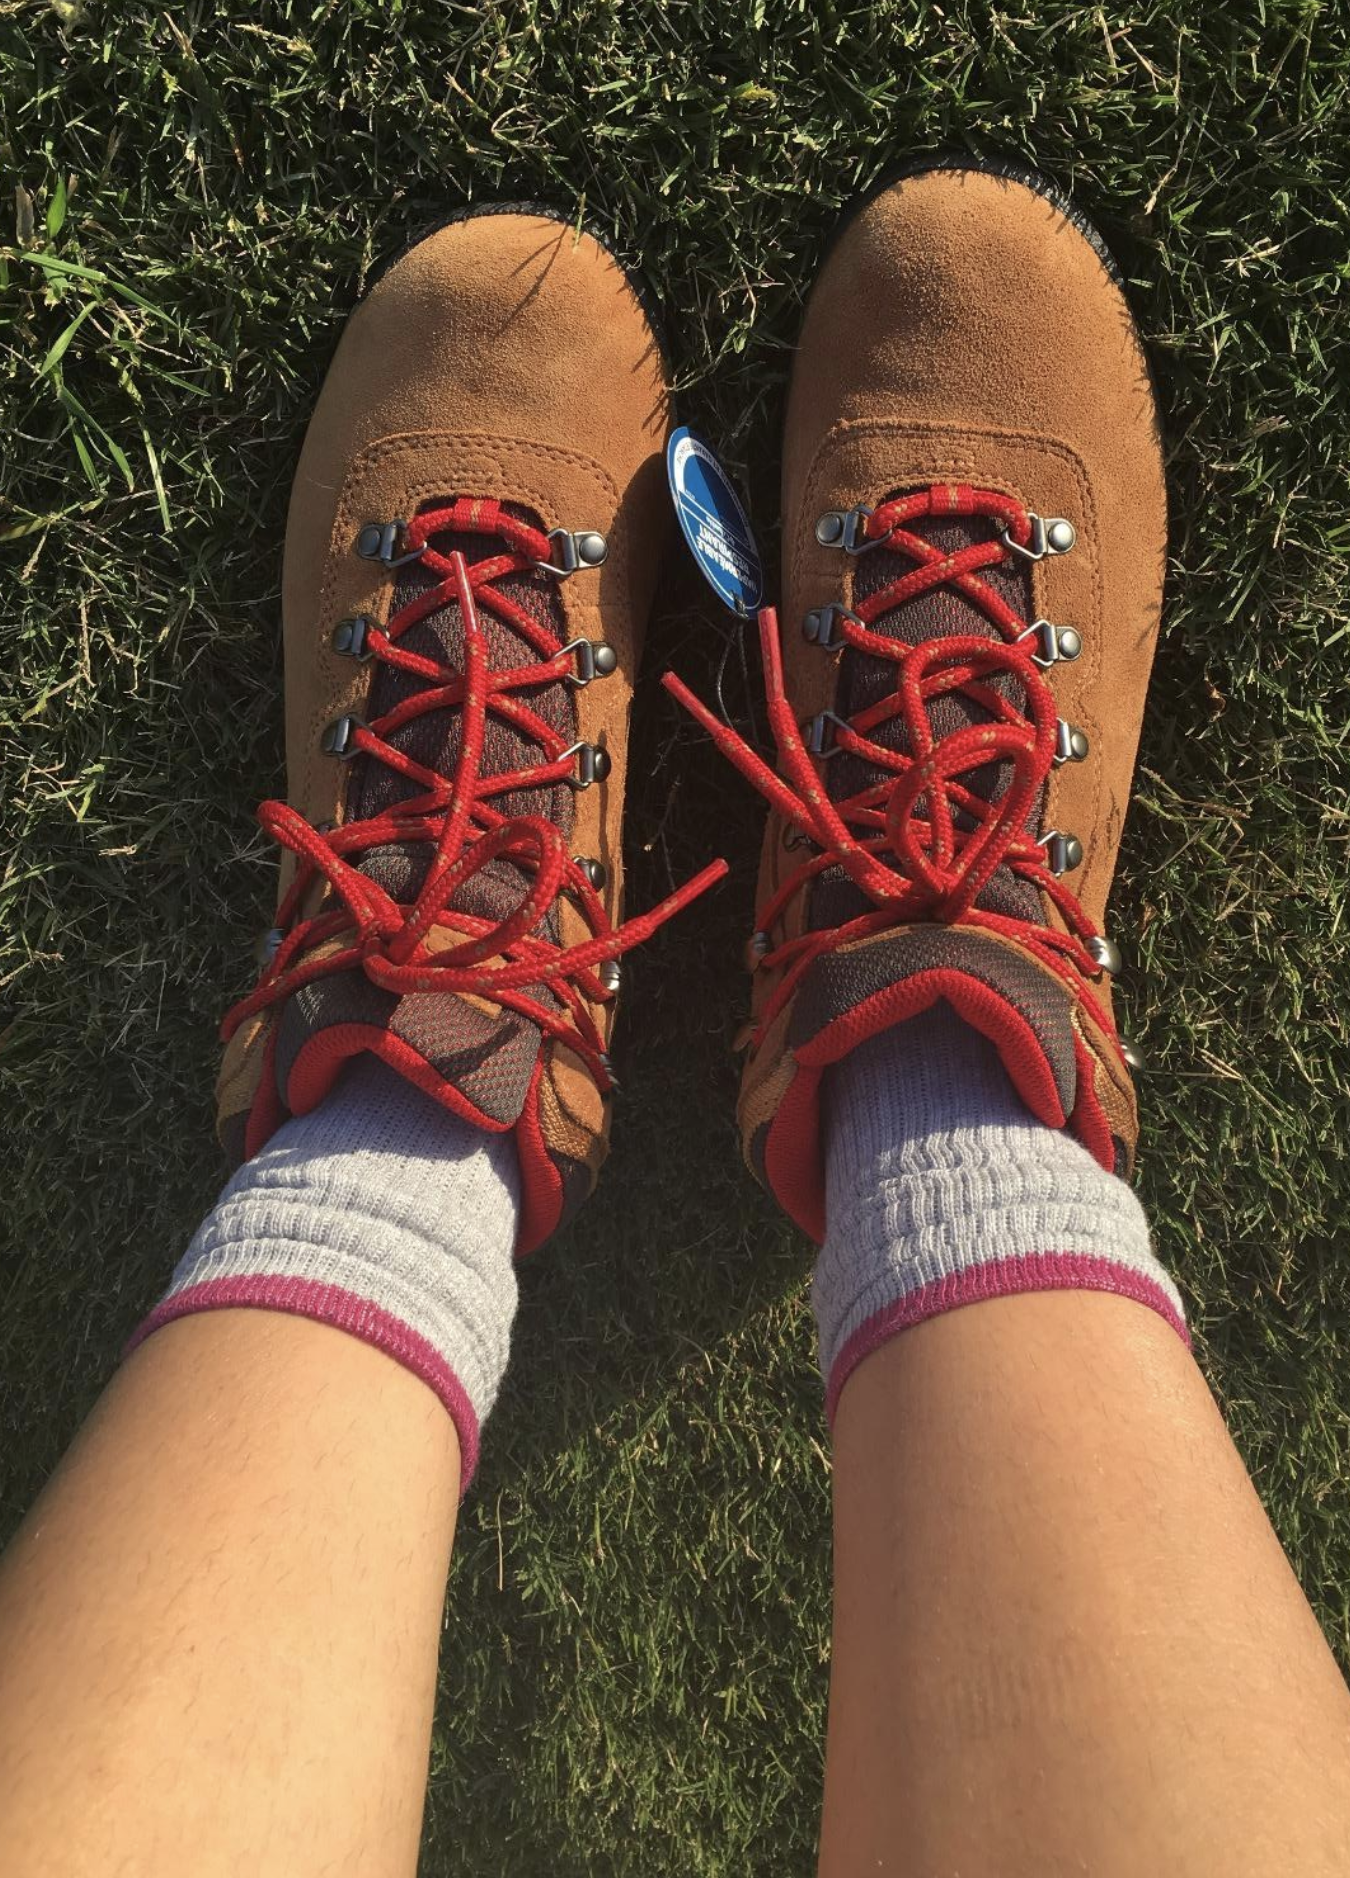 reviewer wearing the brown boots with red laces